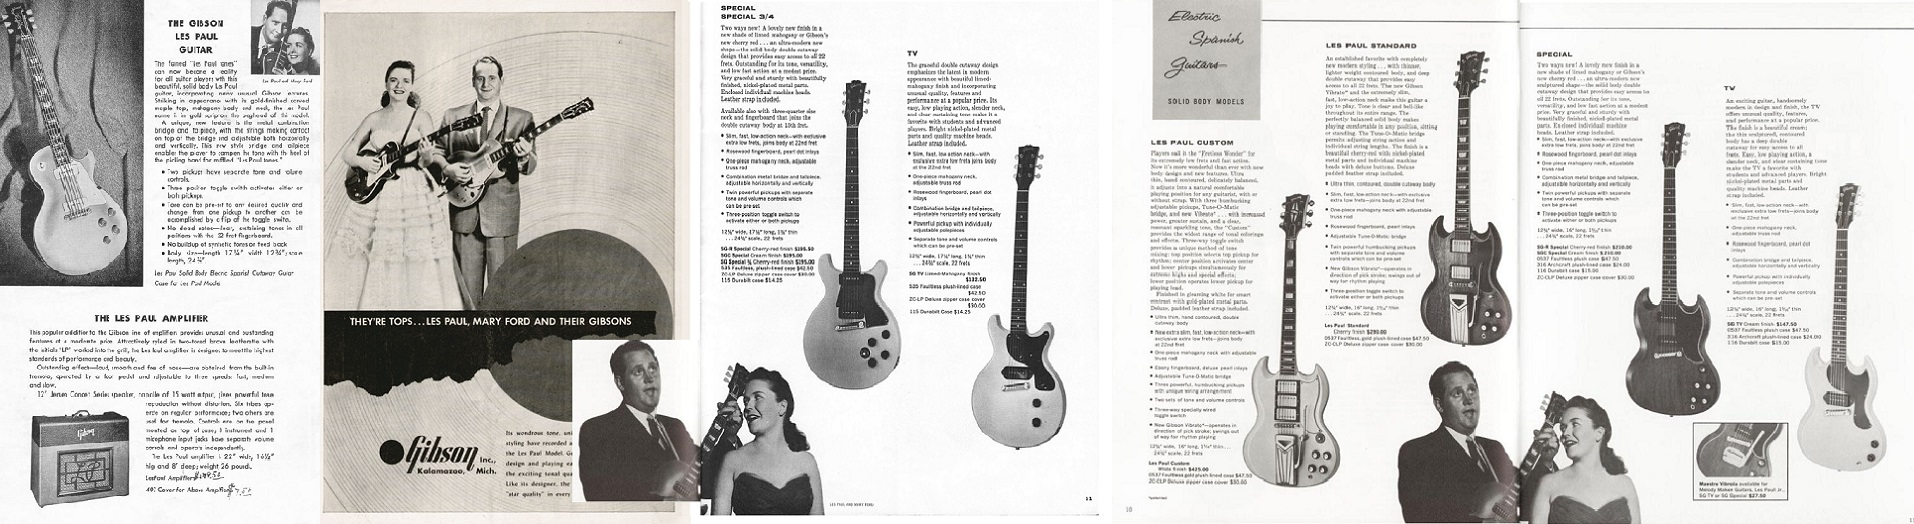 Gibson, Les Paul and Mary Ford 1952-1962!